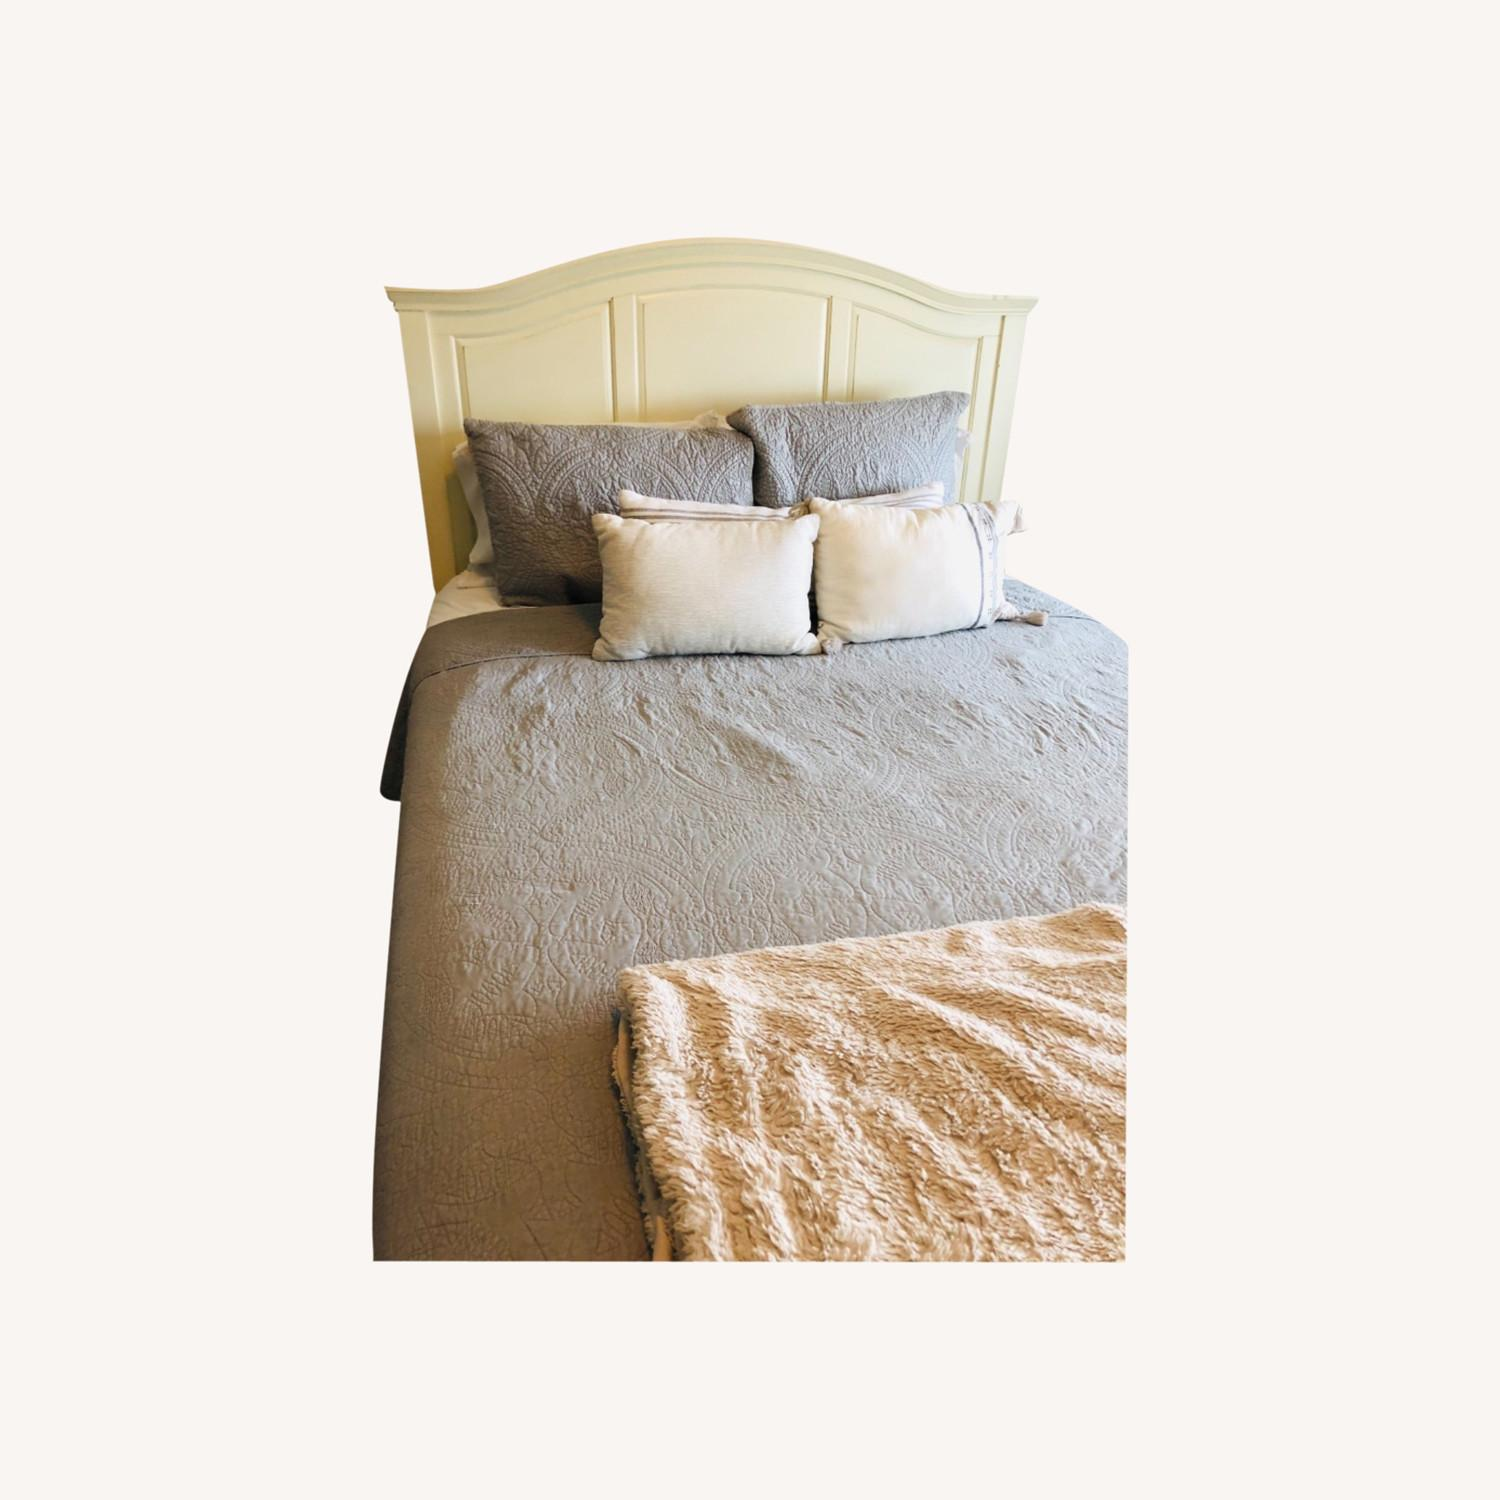 Pottery Barn Queen Sized Headboard (Off-White) - image-0